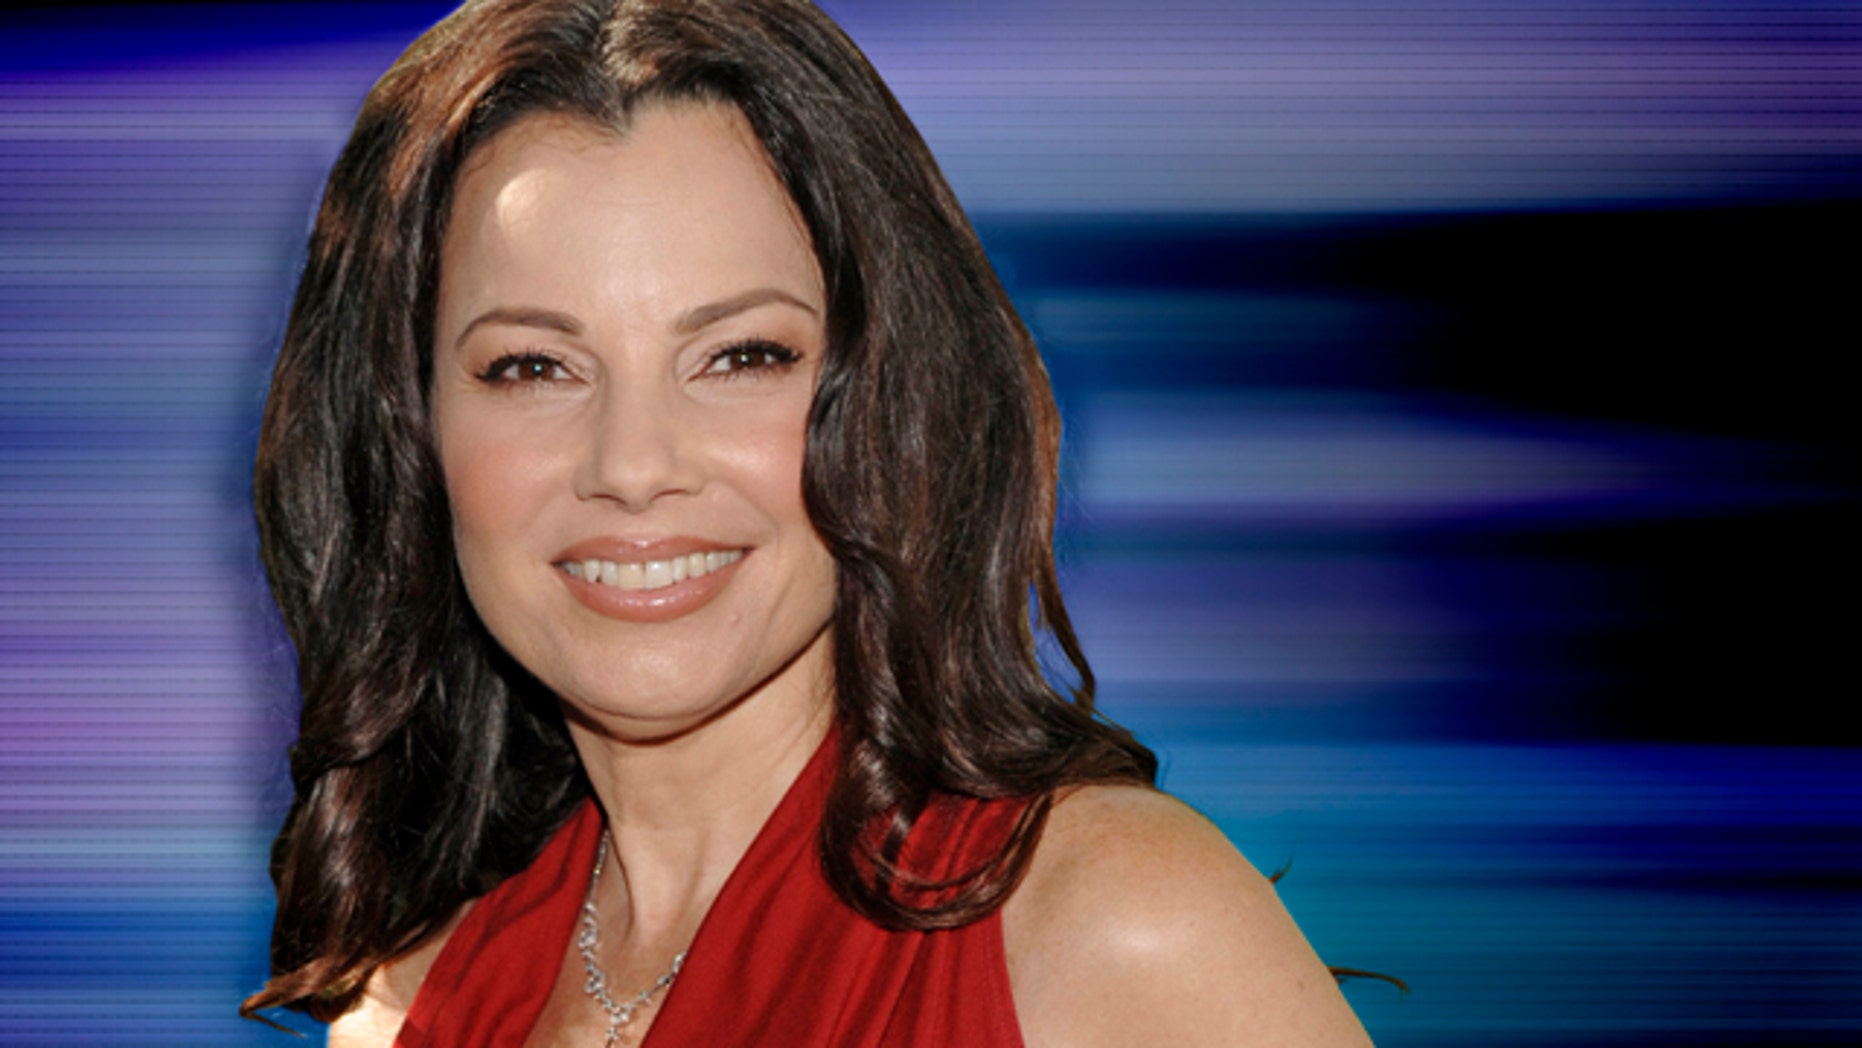 'Nanny' star Fran Drescher says she's considering a run for elected office.